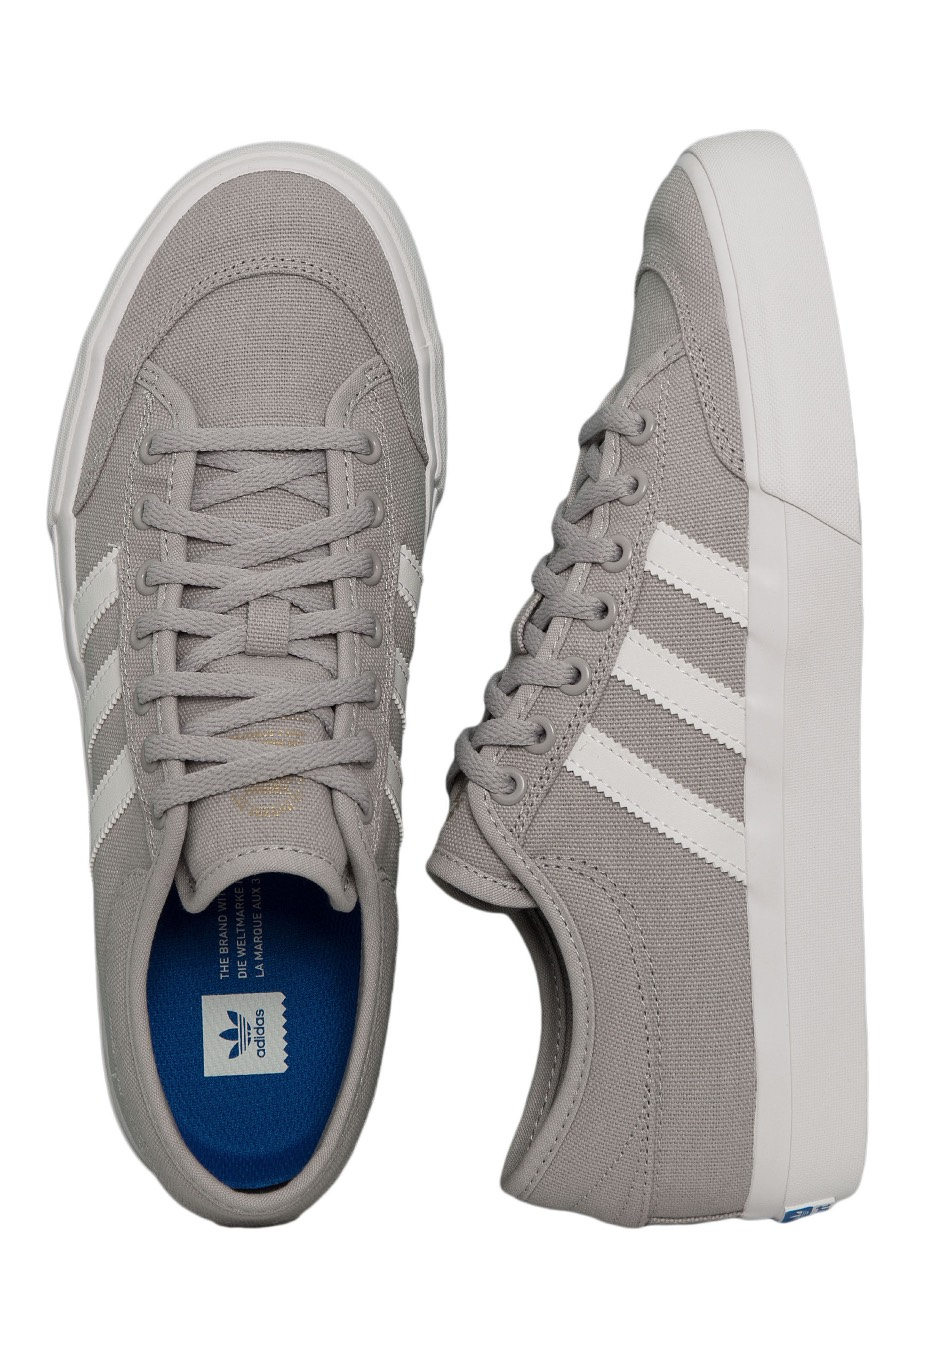 87ec46538620 Adidas - Matchcourt Grey Two Ftwr White Gum 4 - Shoes - Impericon.com  Worldwide